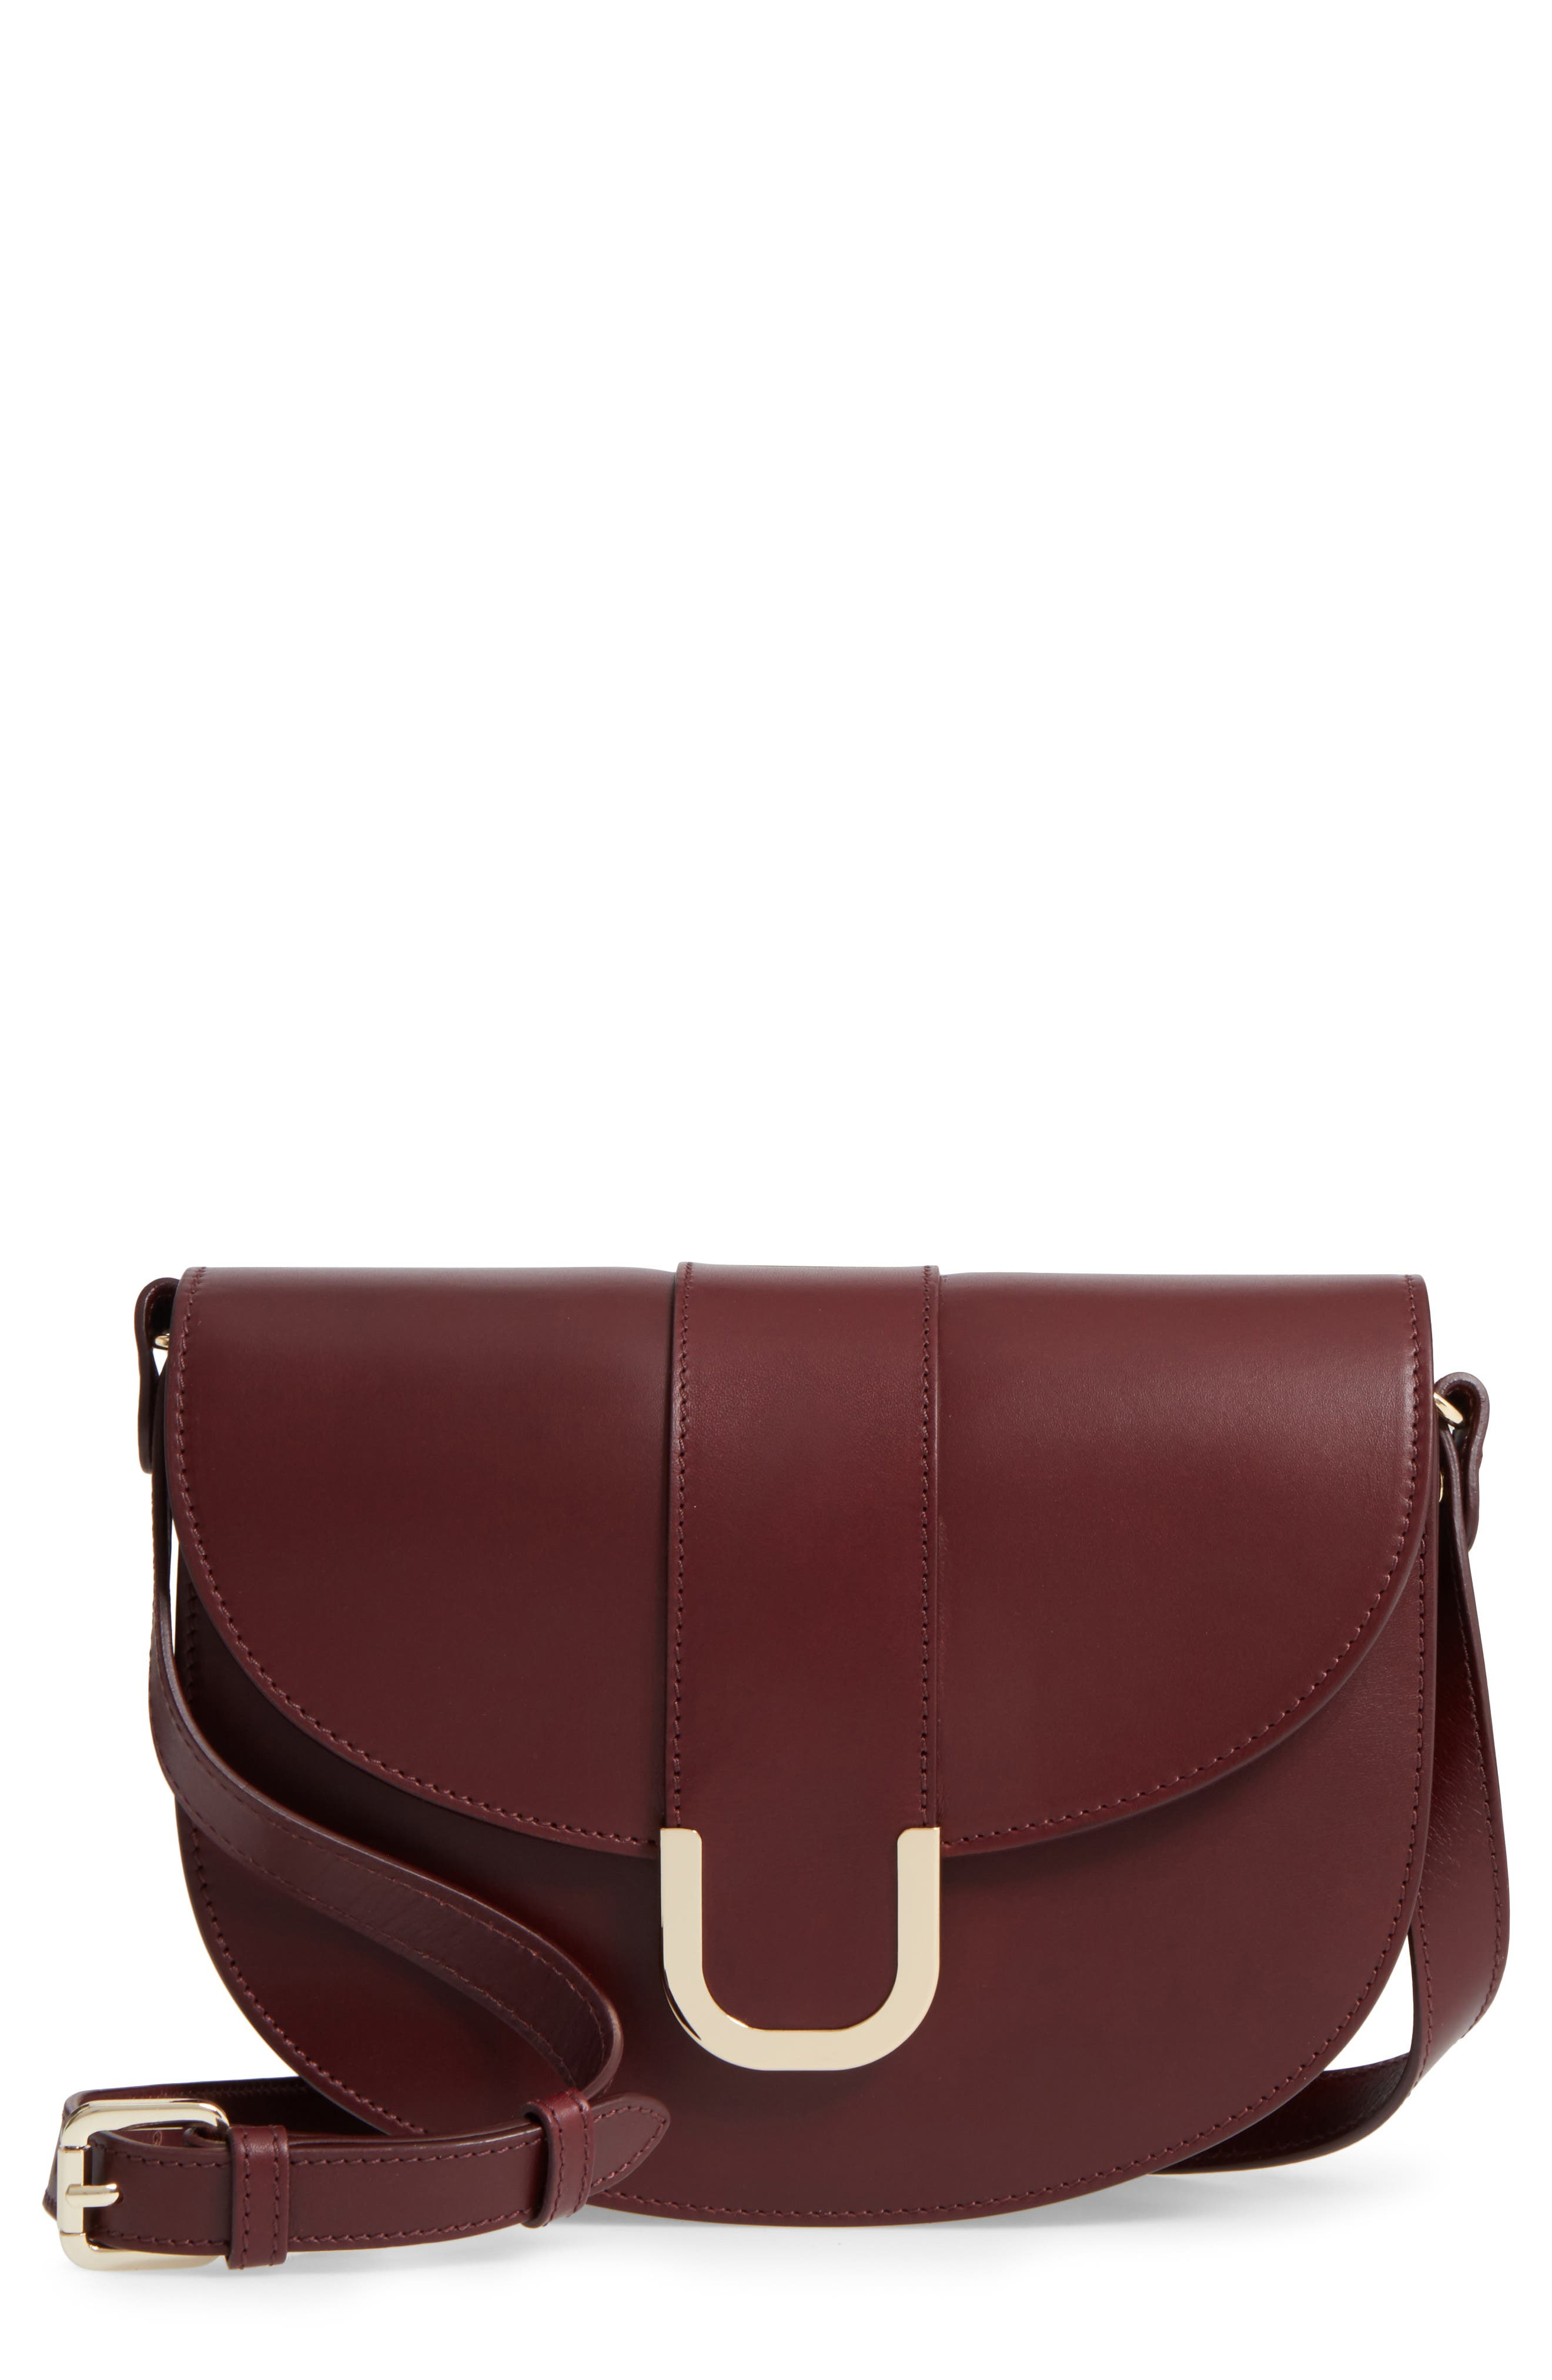 Soho Calfskin Leather Saddle Bag, Main, color, 600